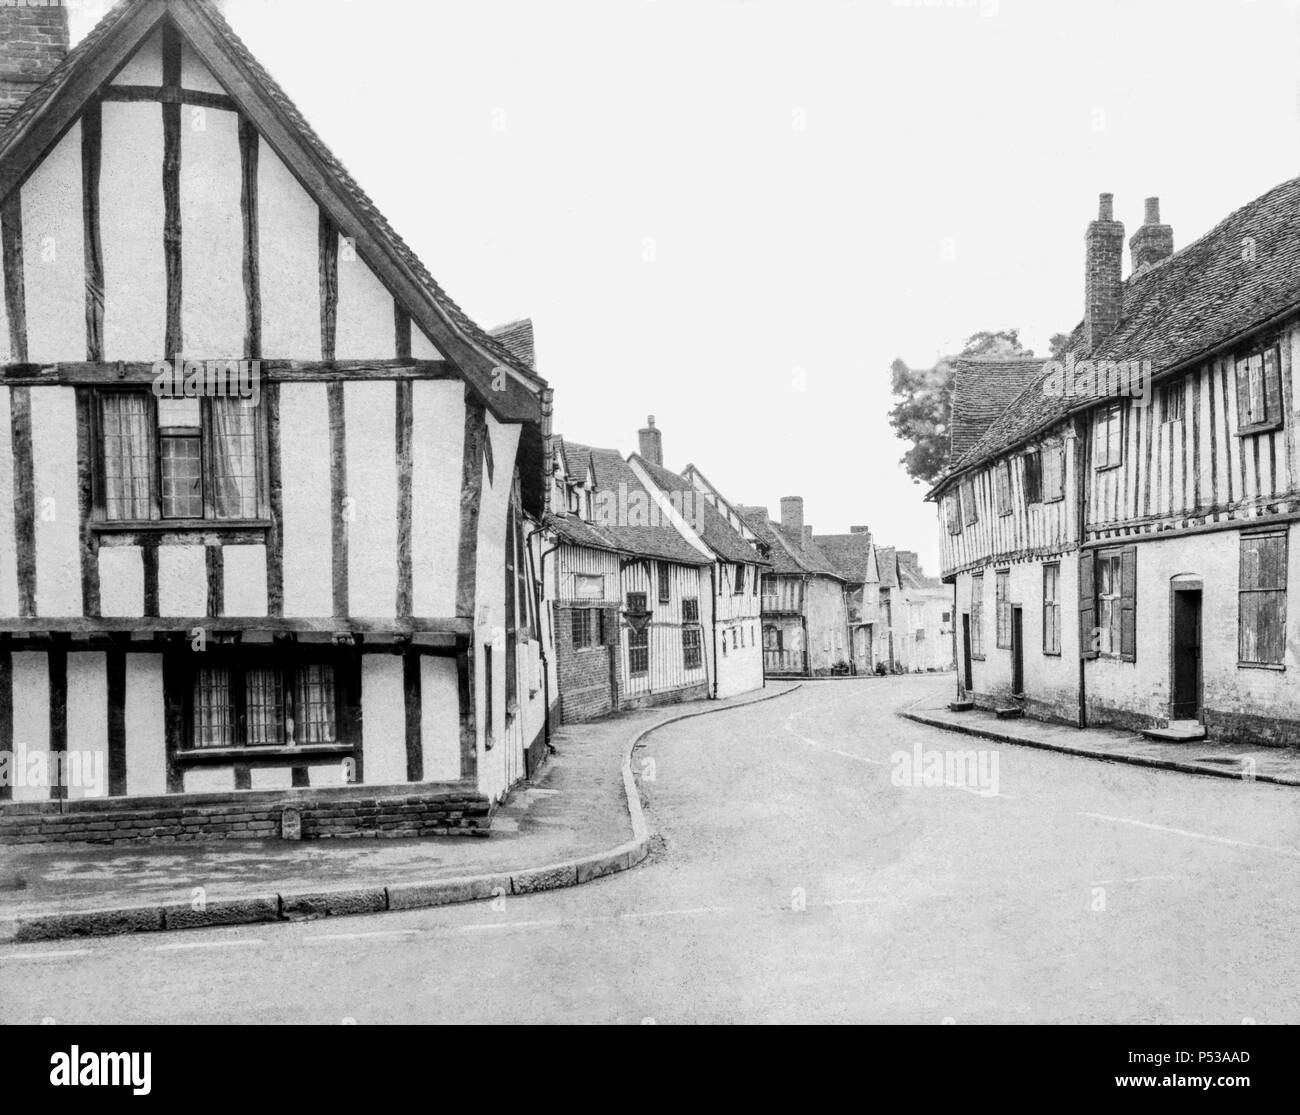 Half-timbered medieval buildings (The Swan Hotel & Water Street) in Lavenham, Suffolk UK taken on a paper negative on a 5x4 camera around 1972. - Stock Image